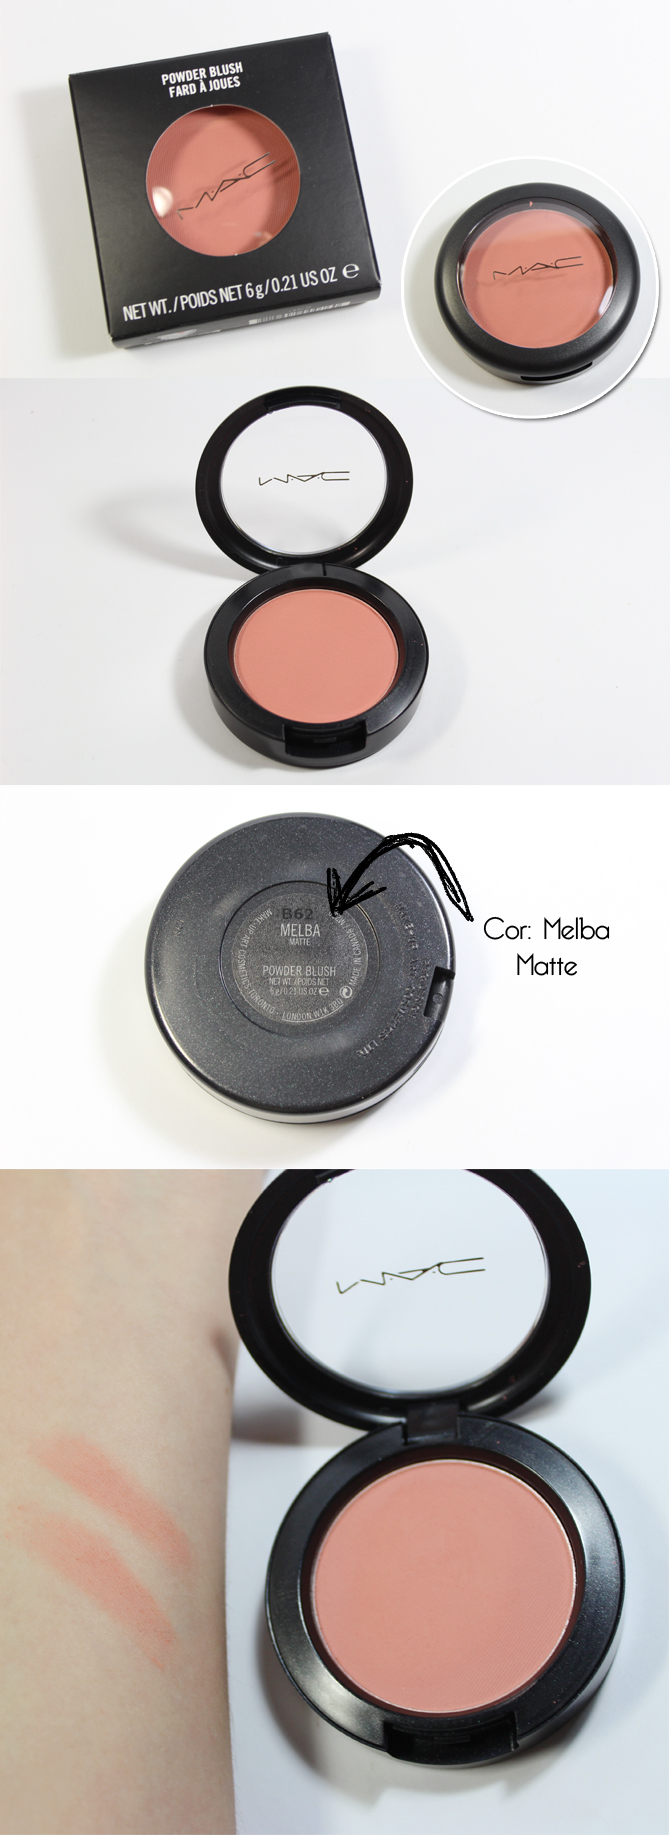 blush melba MAC copy